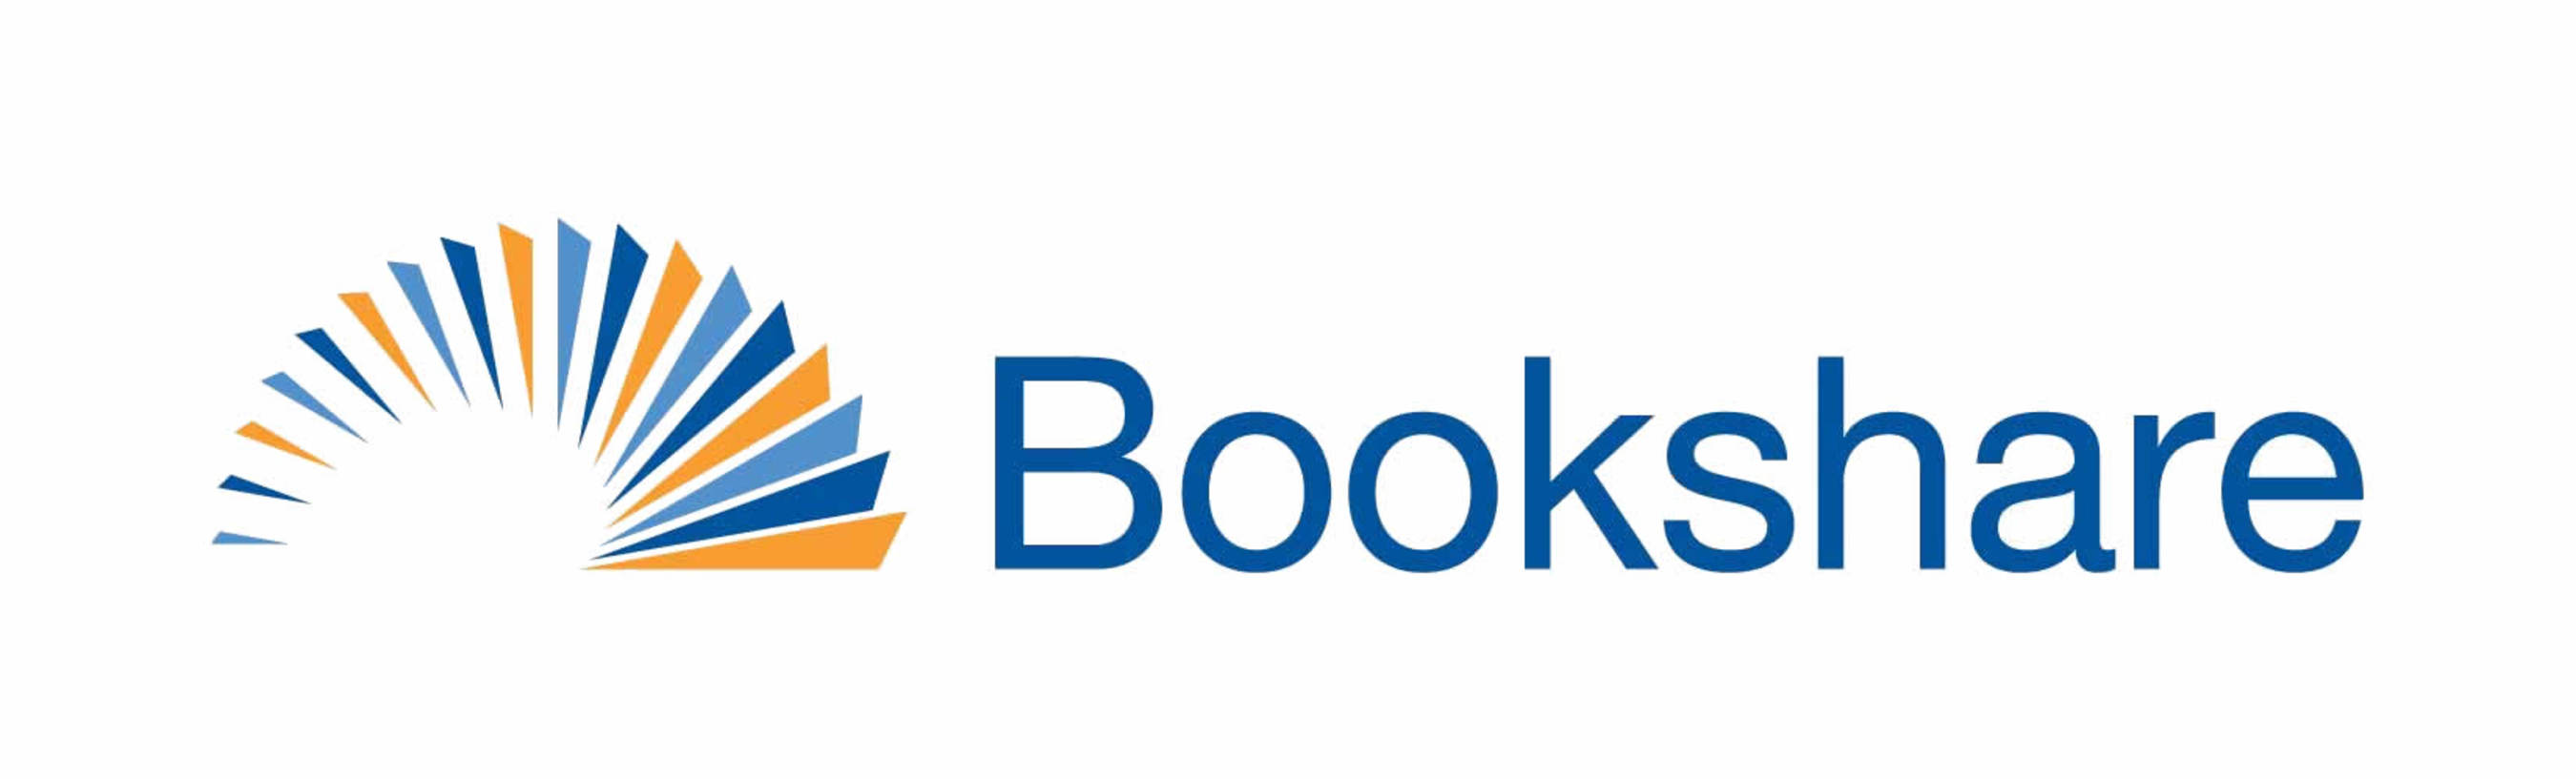 Bookshare and Assistive Technologies Help Students with